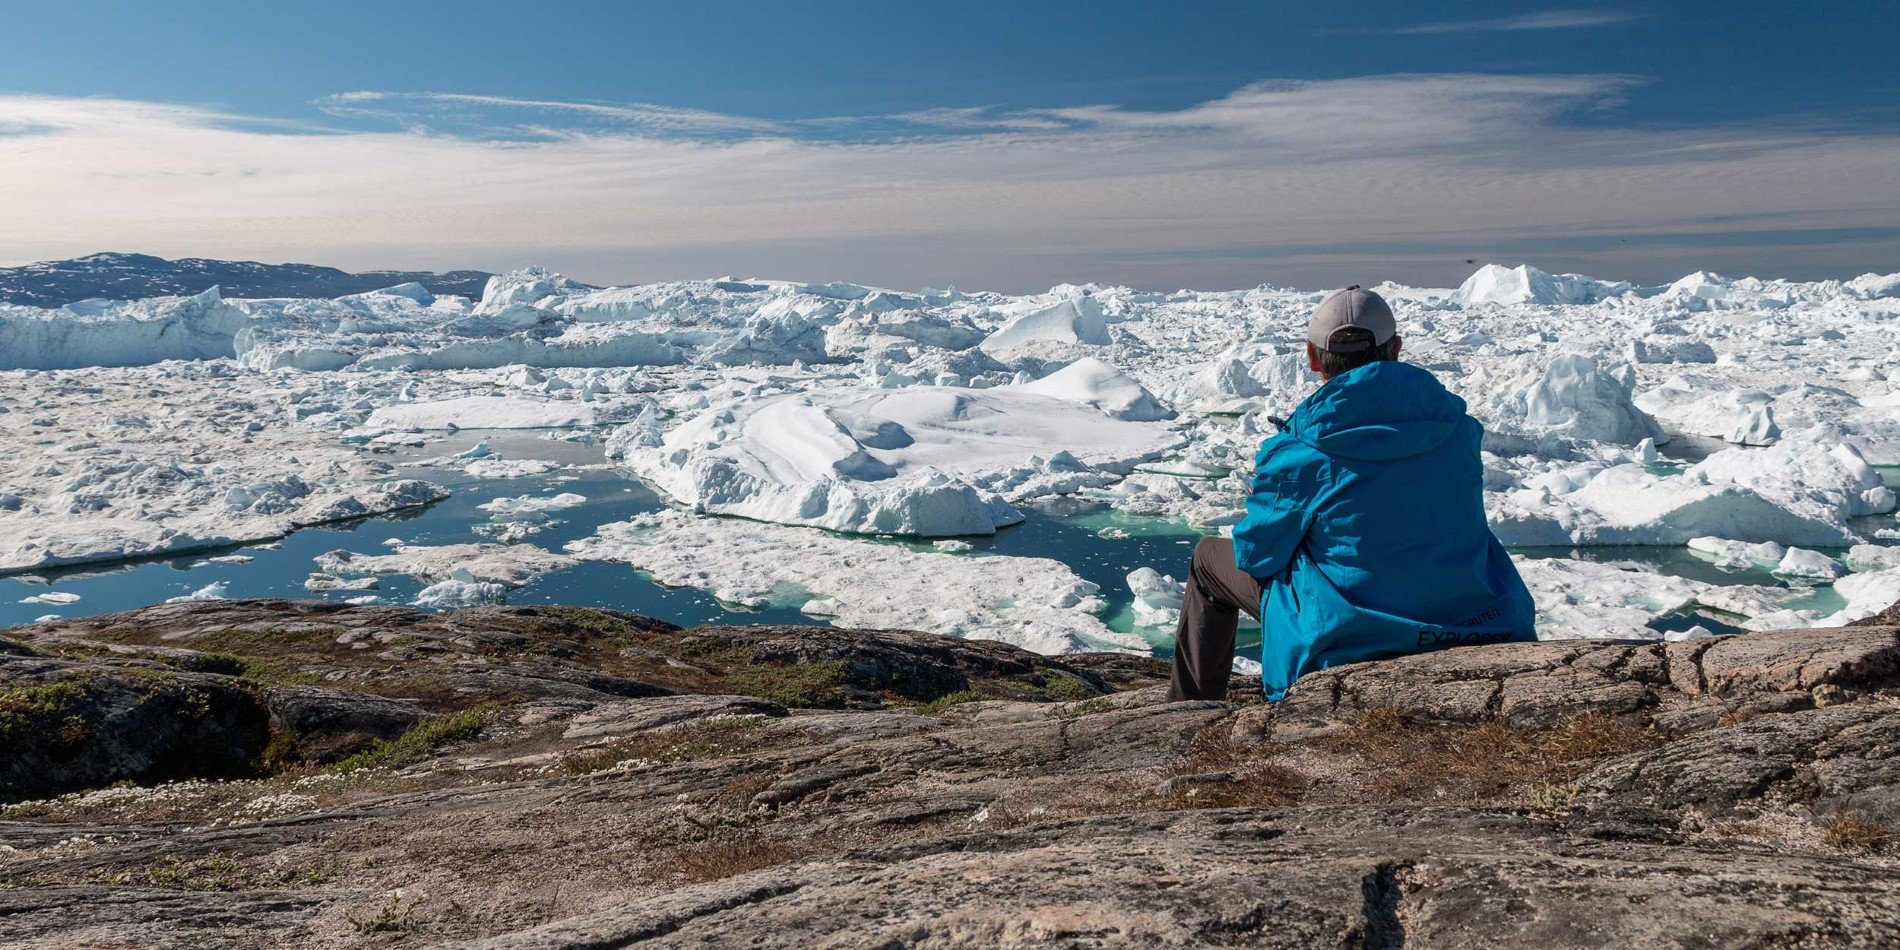 A-beautiful-view-Ilulissat-Greenland-HGR-113711-Andrea-Klaussner.jpg